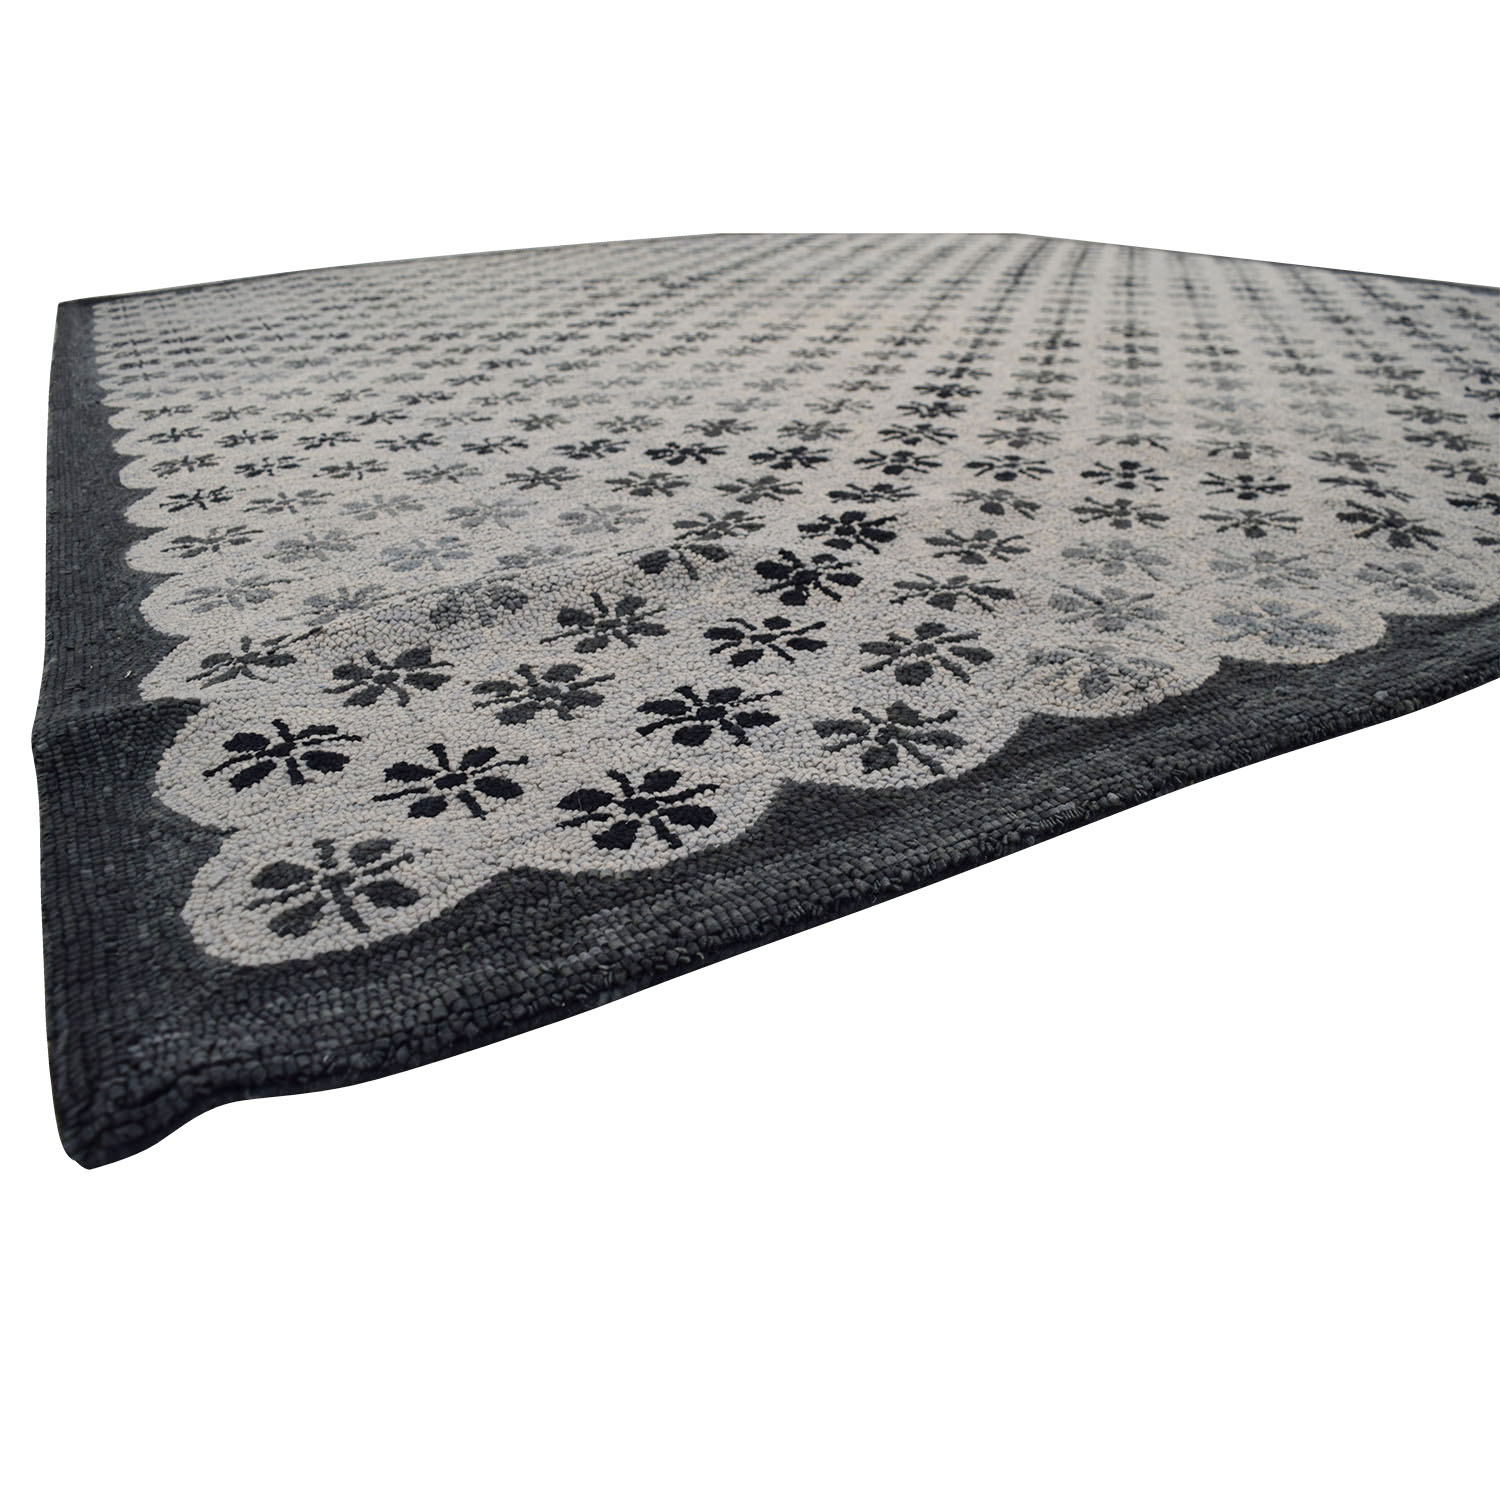 Obeetee Obeetee Gray and Black Asterisk Rug dimensions